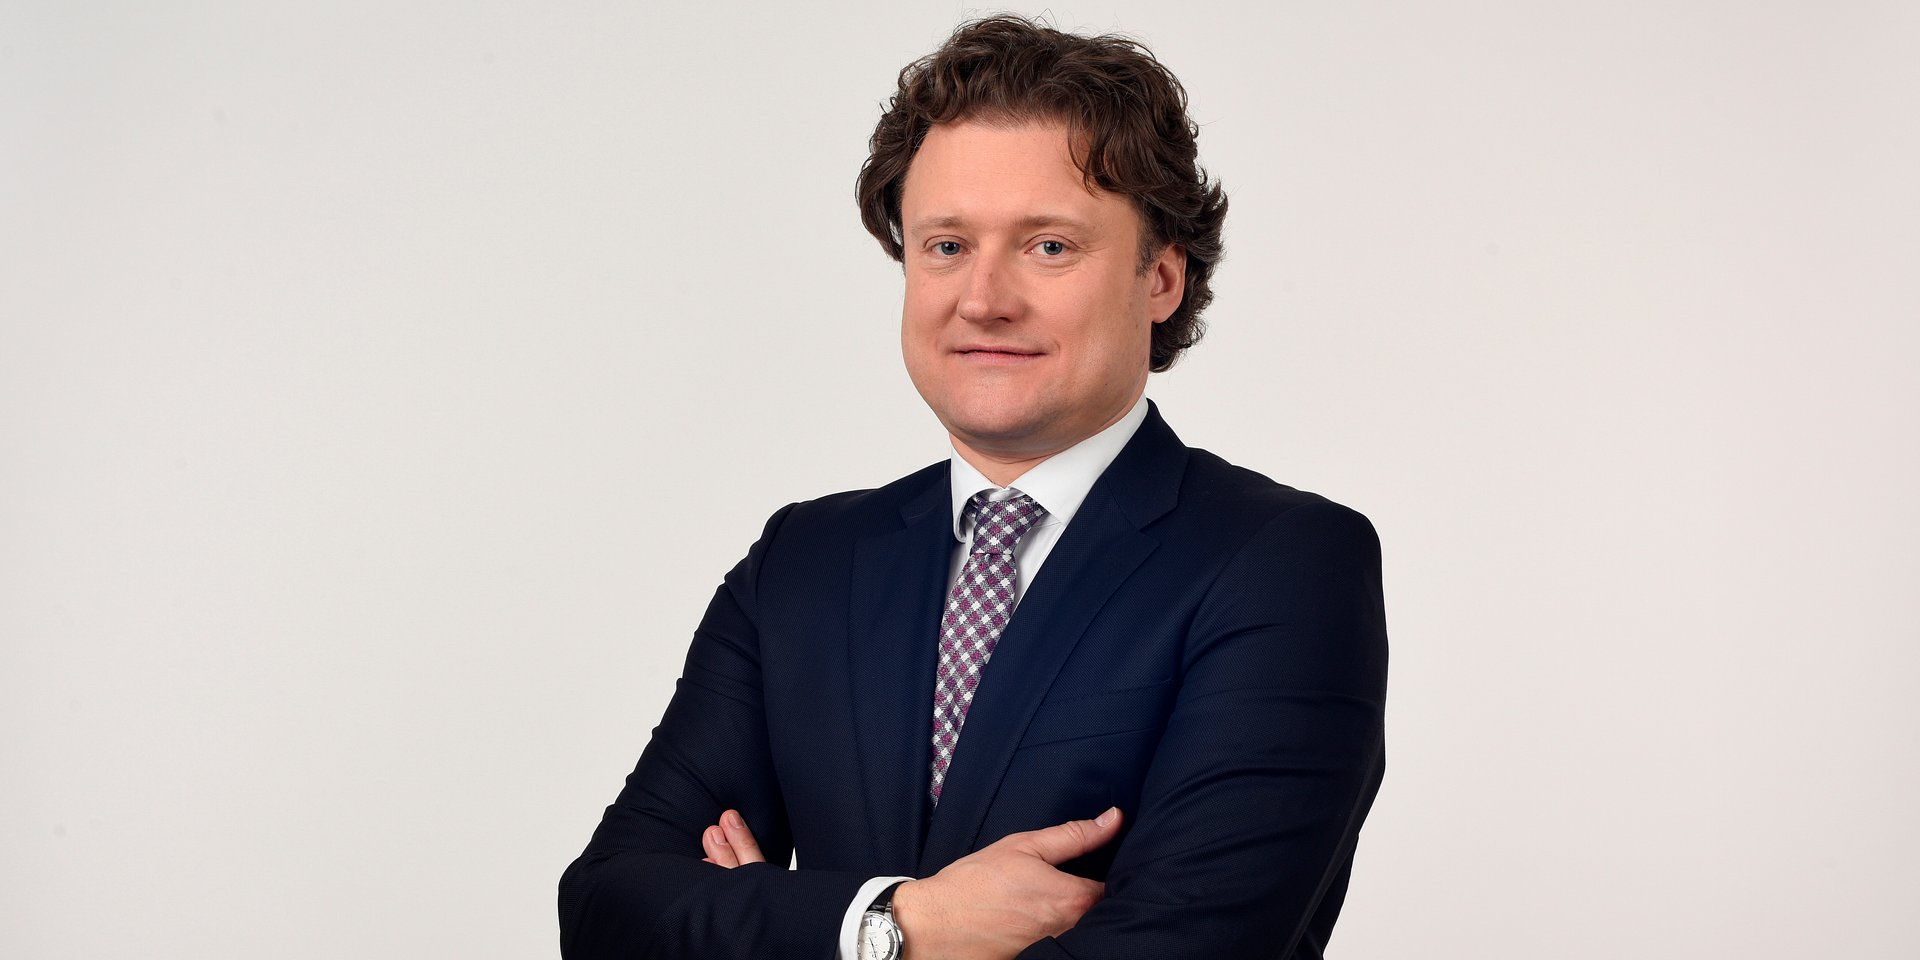 BNP Paribas Real Estate Expands Its Capital Markets Department in Central and Eastern Europe